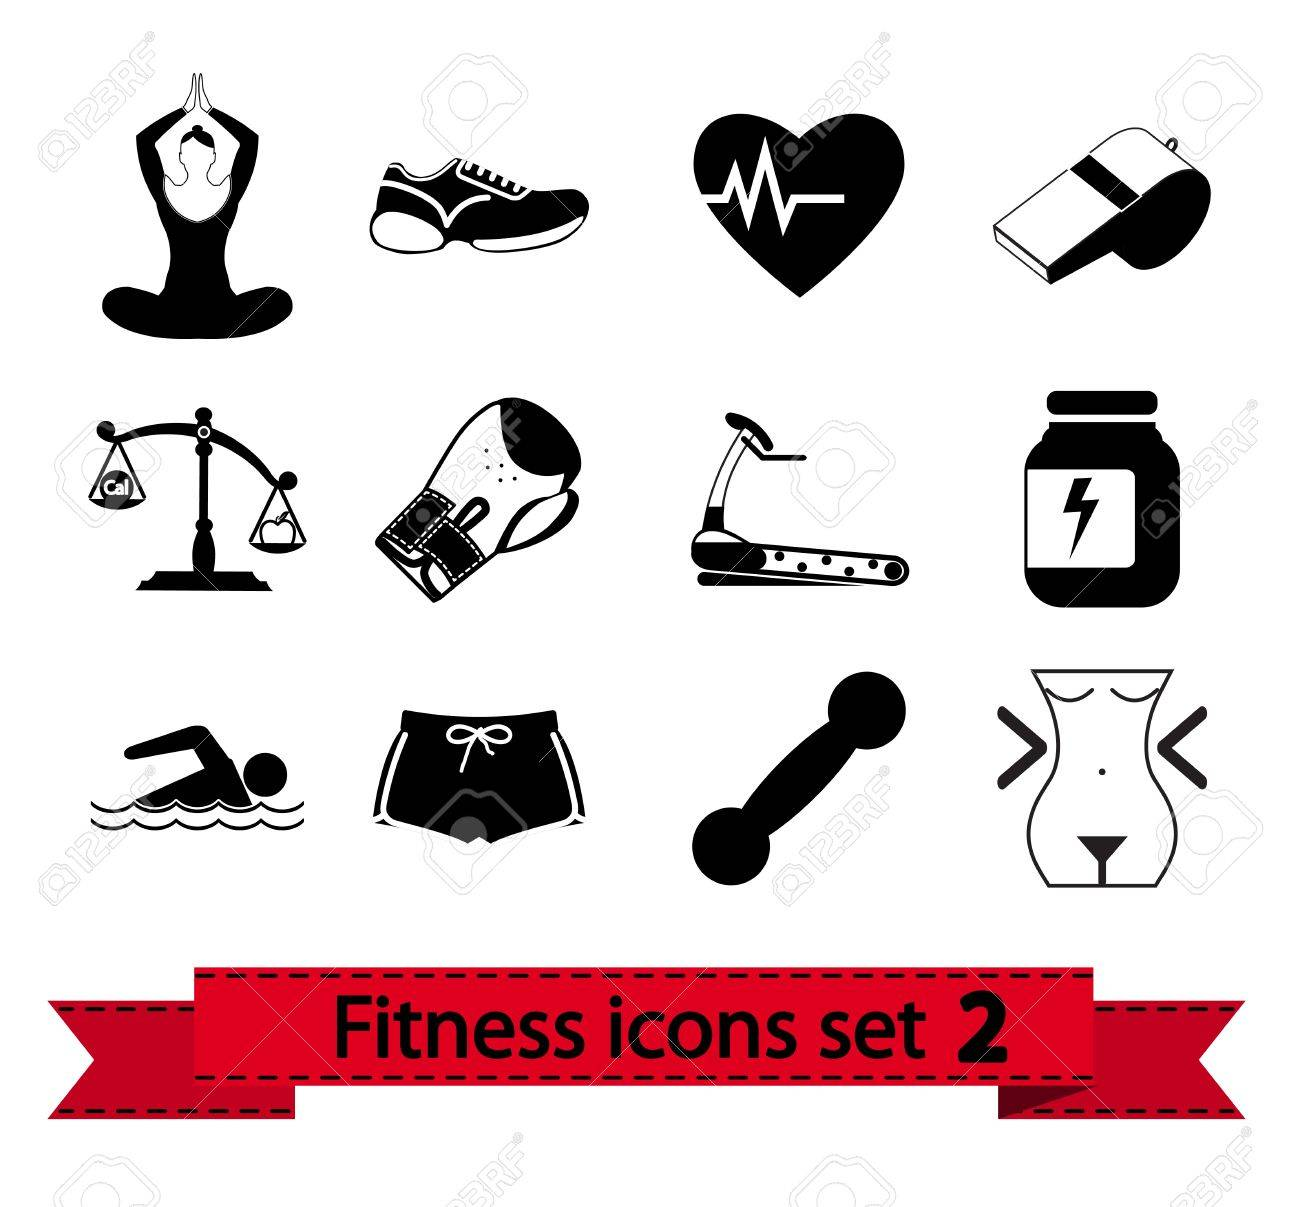 Professiona fitnessl icons for your website  illustration Stock Vector - 15205309